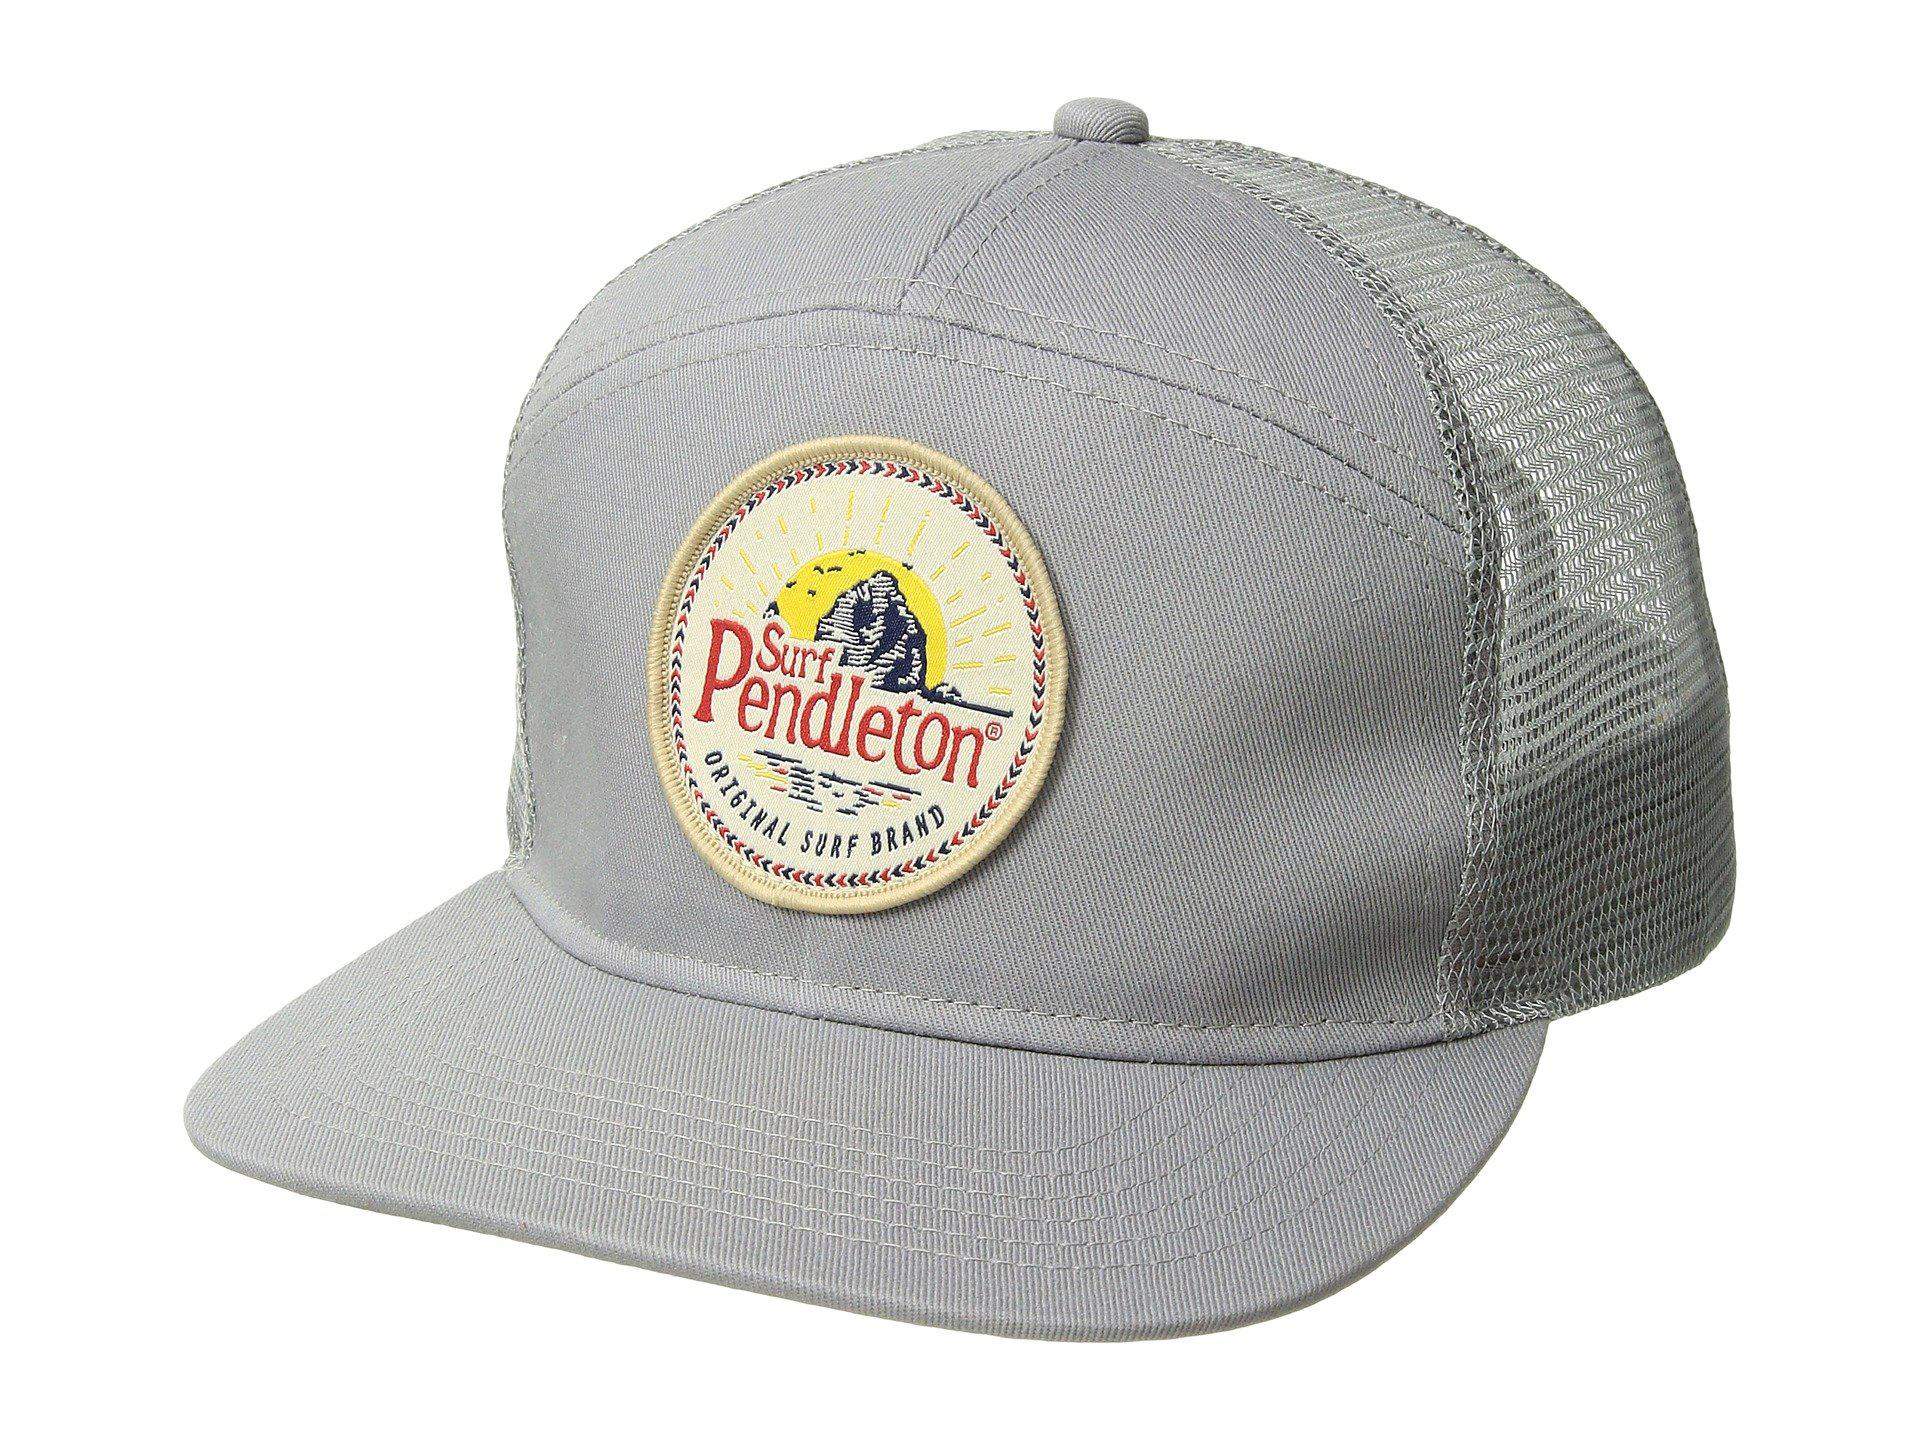 a66ad357c17 Lyst pendleton surf trucker hat with patch in gray for men jpg 1920x1440  Caps sewn patch